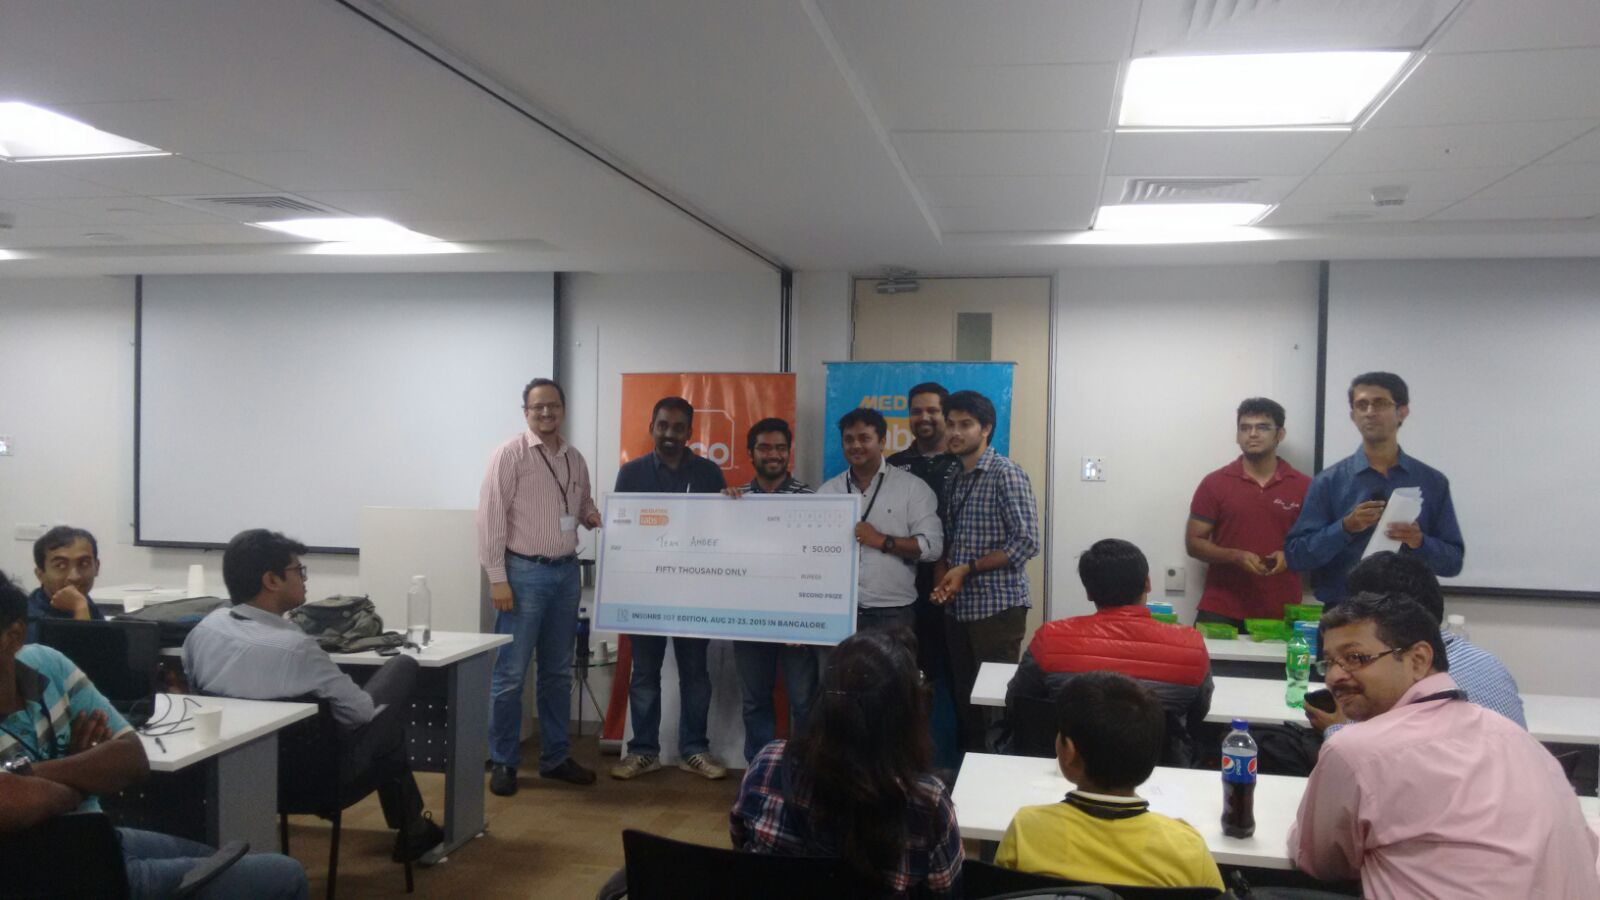 Maddy & team winning the hackathon for the first prototype of Ambee prototype